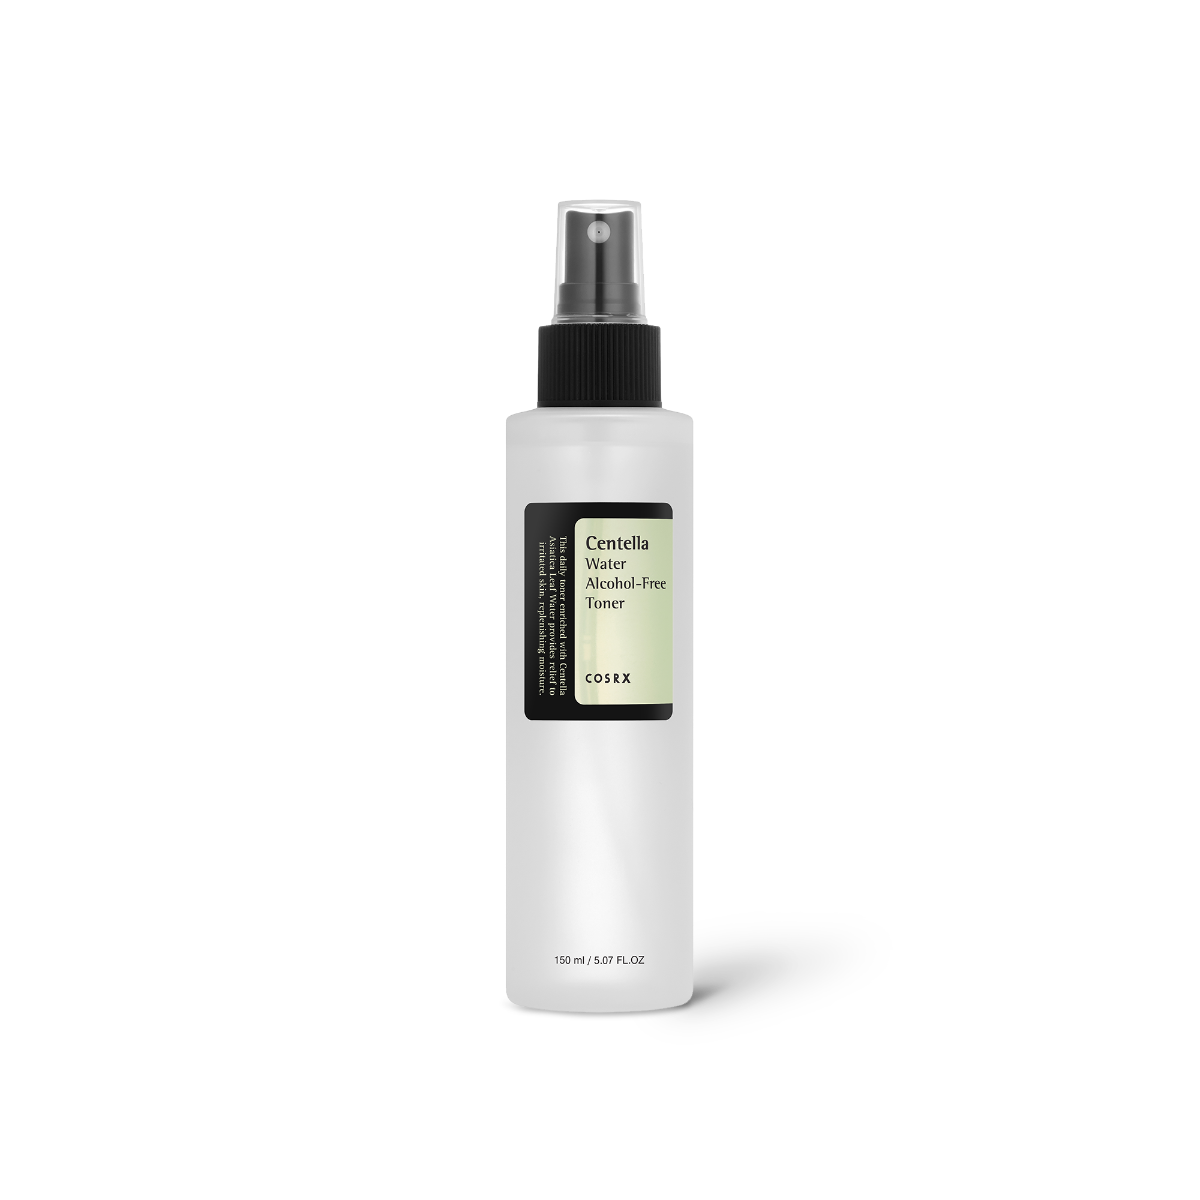 Centella Water Alcohol-Free Toner 120ml - Know To Glow